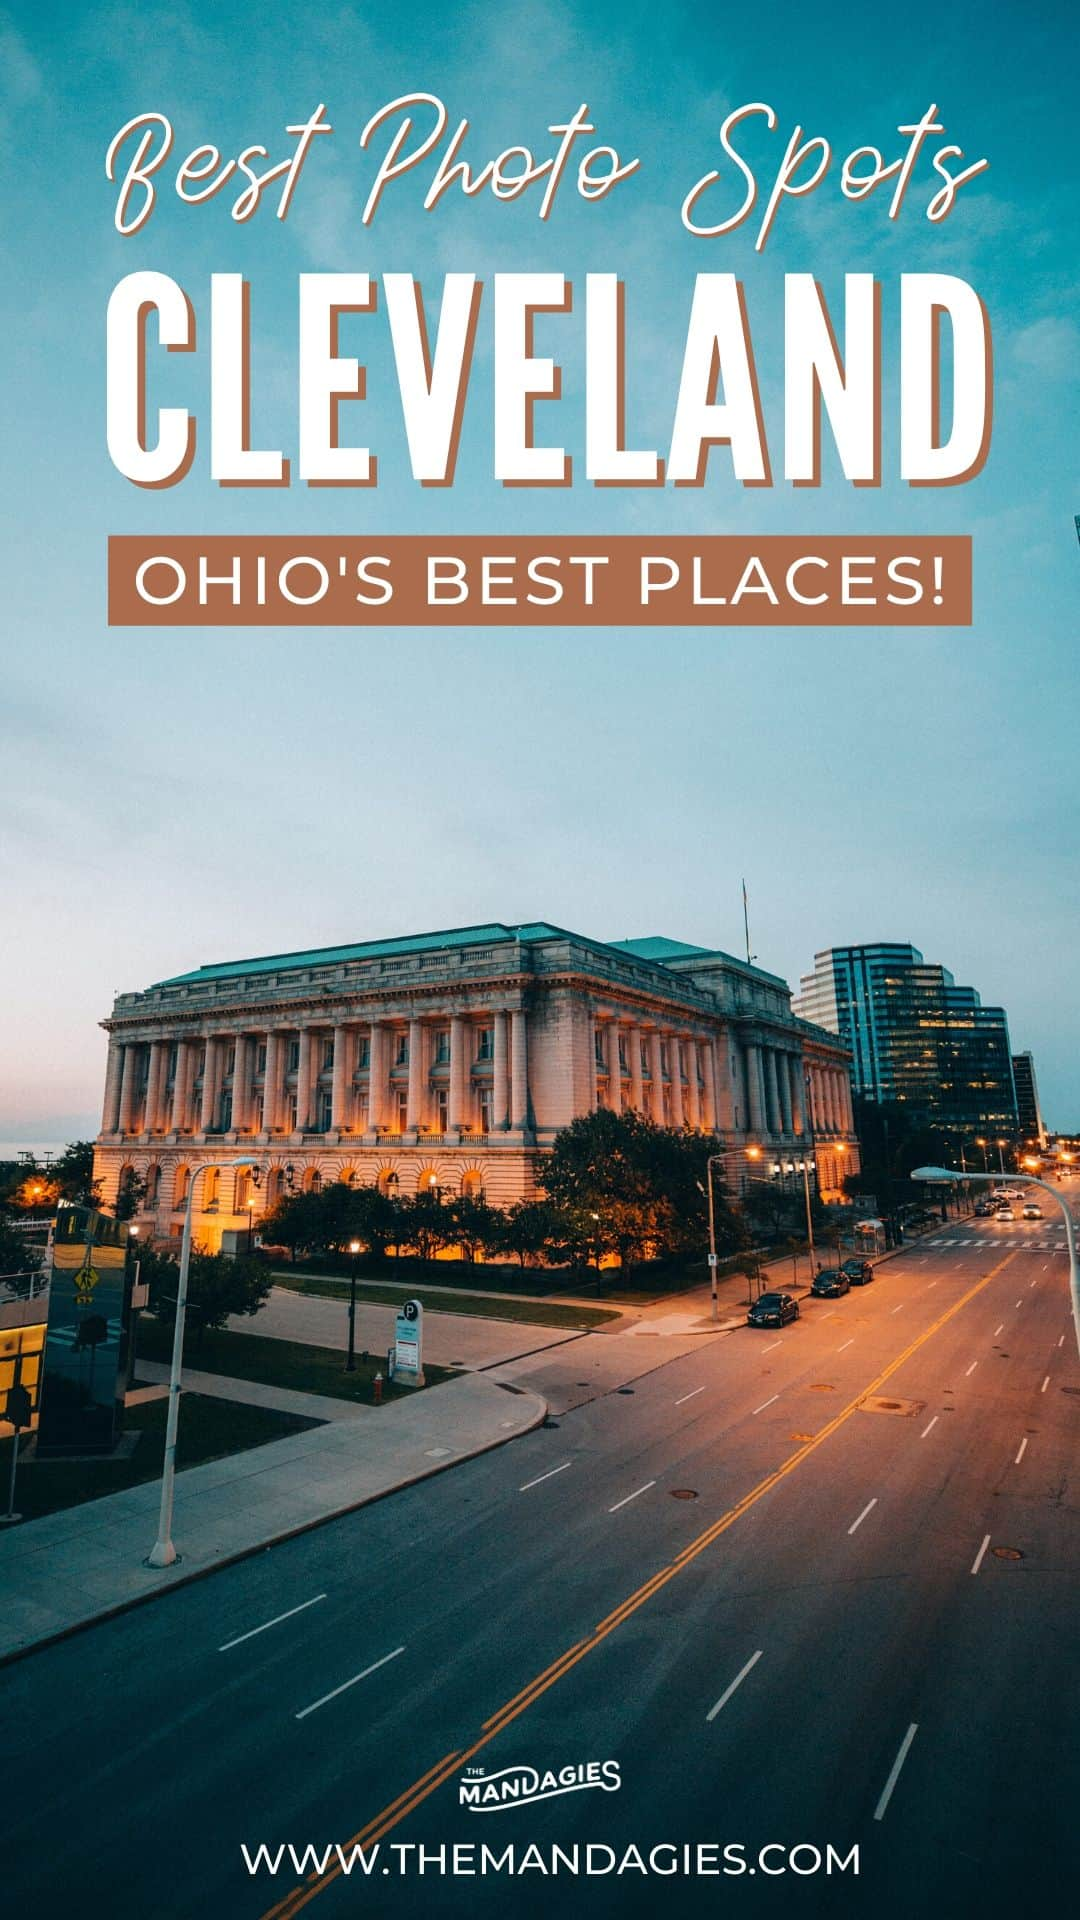 Traveling to Cleveland, Ohio, and want to know the best spots? Look no further than this post! We're sharing the best Instagram spots in Cleveland, which include historic places, unique restaurants, gorgeous nature, and so much more. Save this post for your net trip to the midwest! #cleveland #ohio #midwest #instagram #greatlakes #photography #cuyahogavalley #nature